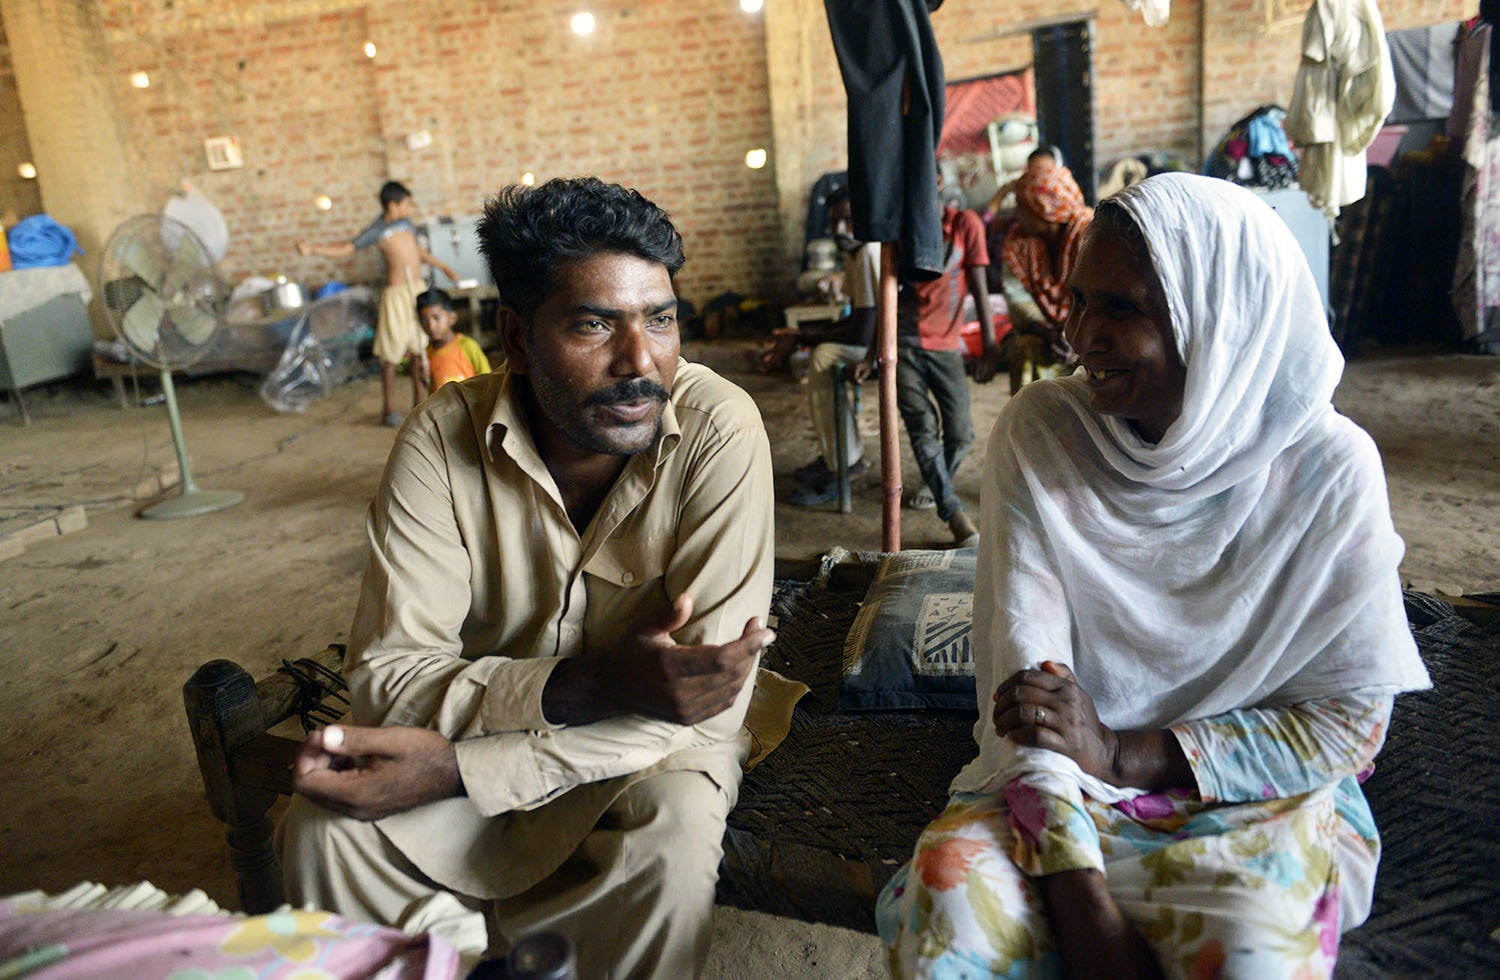 Ejaz, seen here with his mother, is a brick kiln worker in Lahore who sold his kidney 18 months ago.—White Star